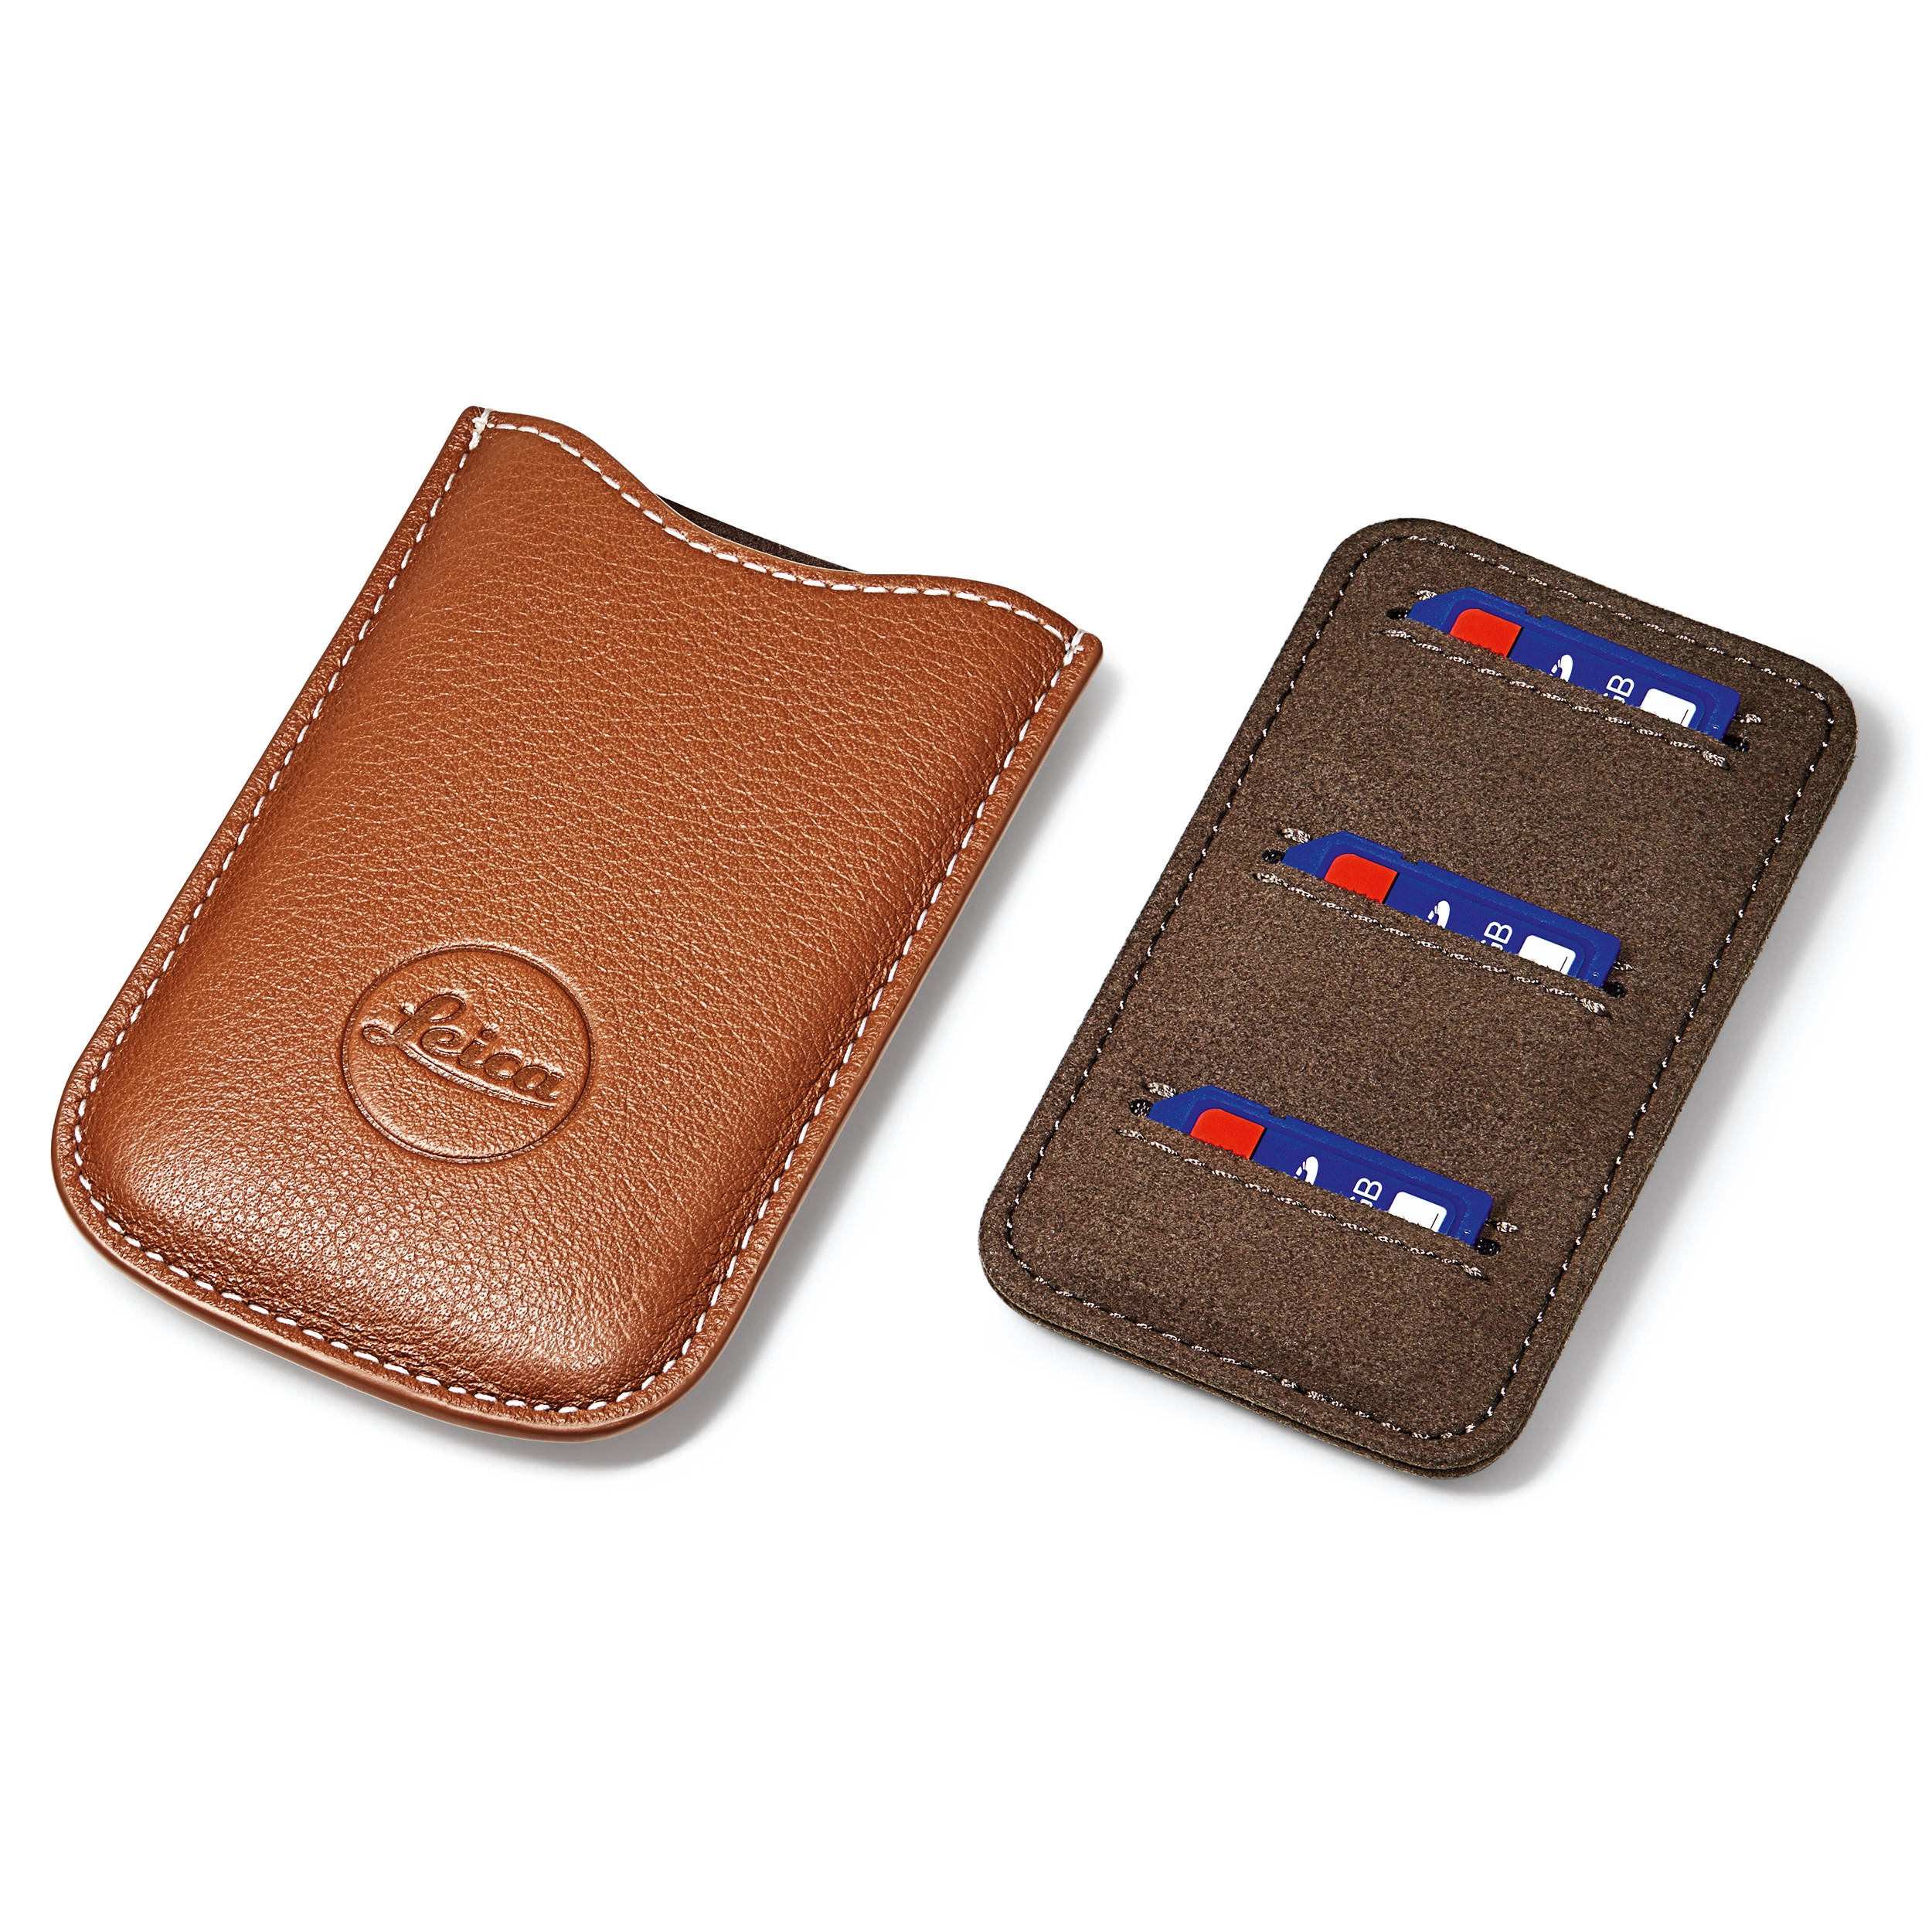 748d6cd79f1 Leica SD and Credit Card Holder (Cognac) 18539 B&H Photo Video